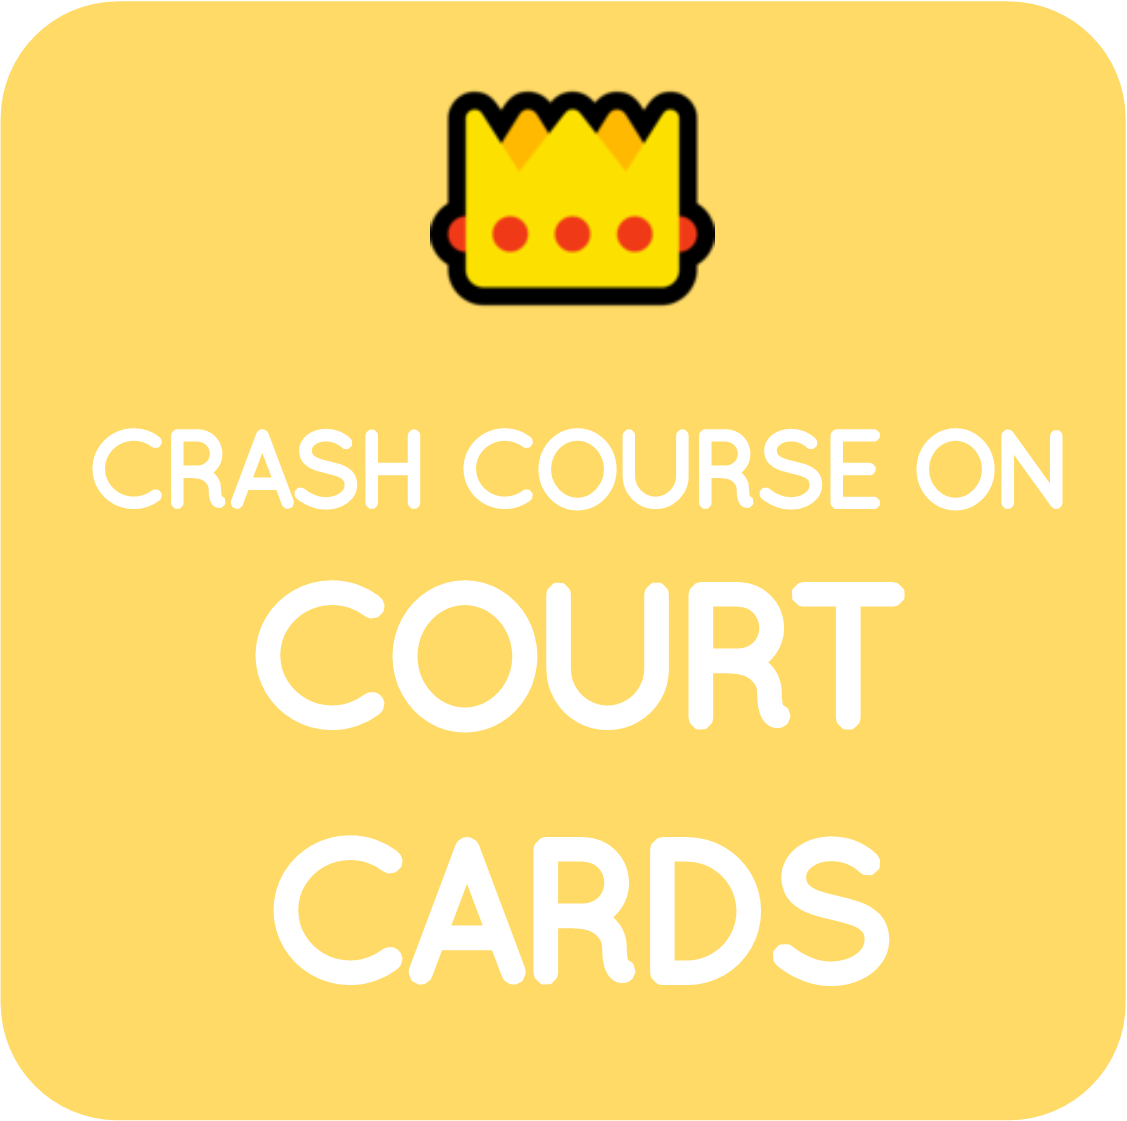 05-crash course on court cards.png